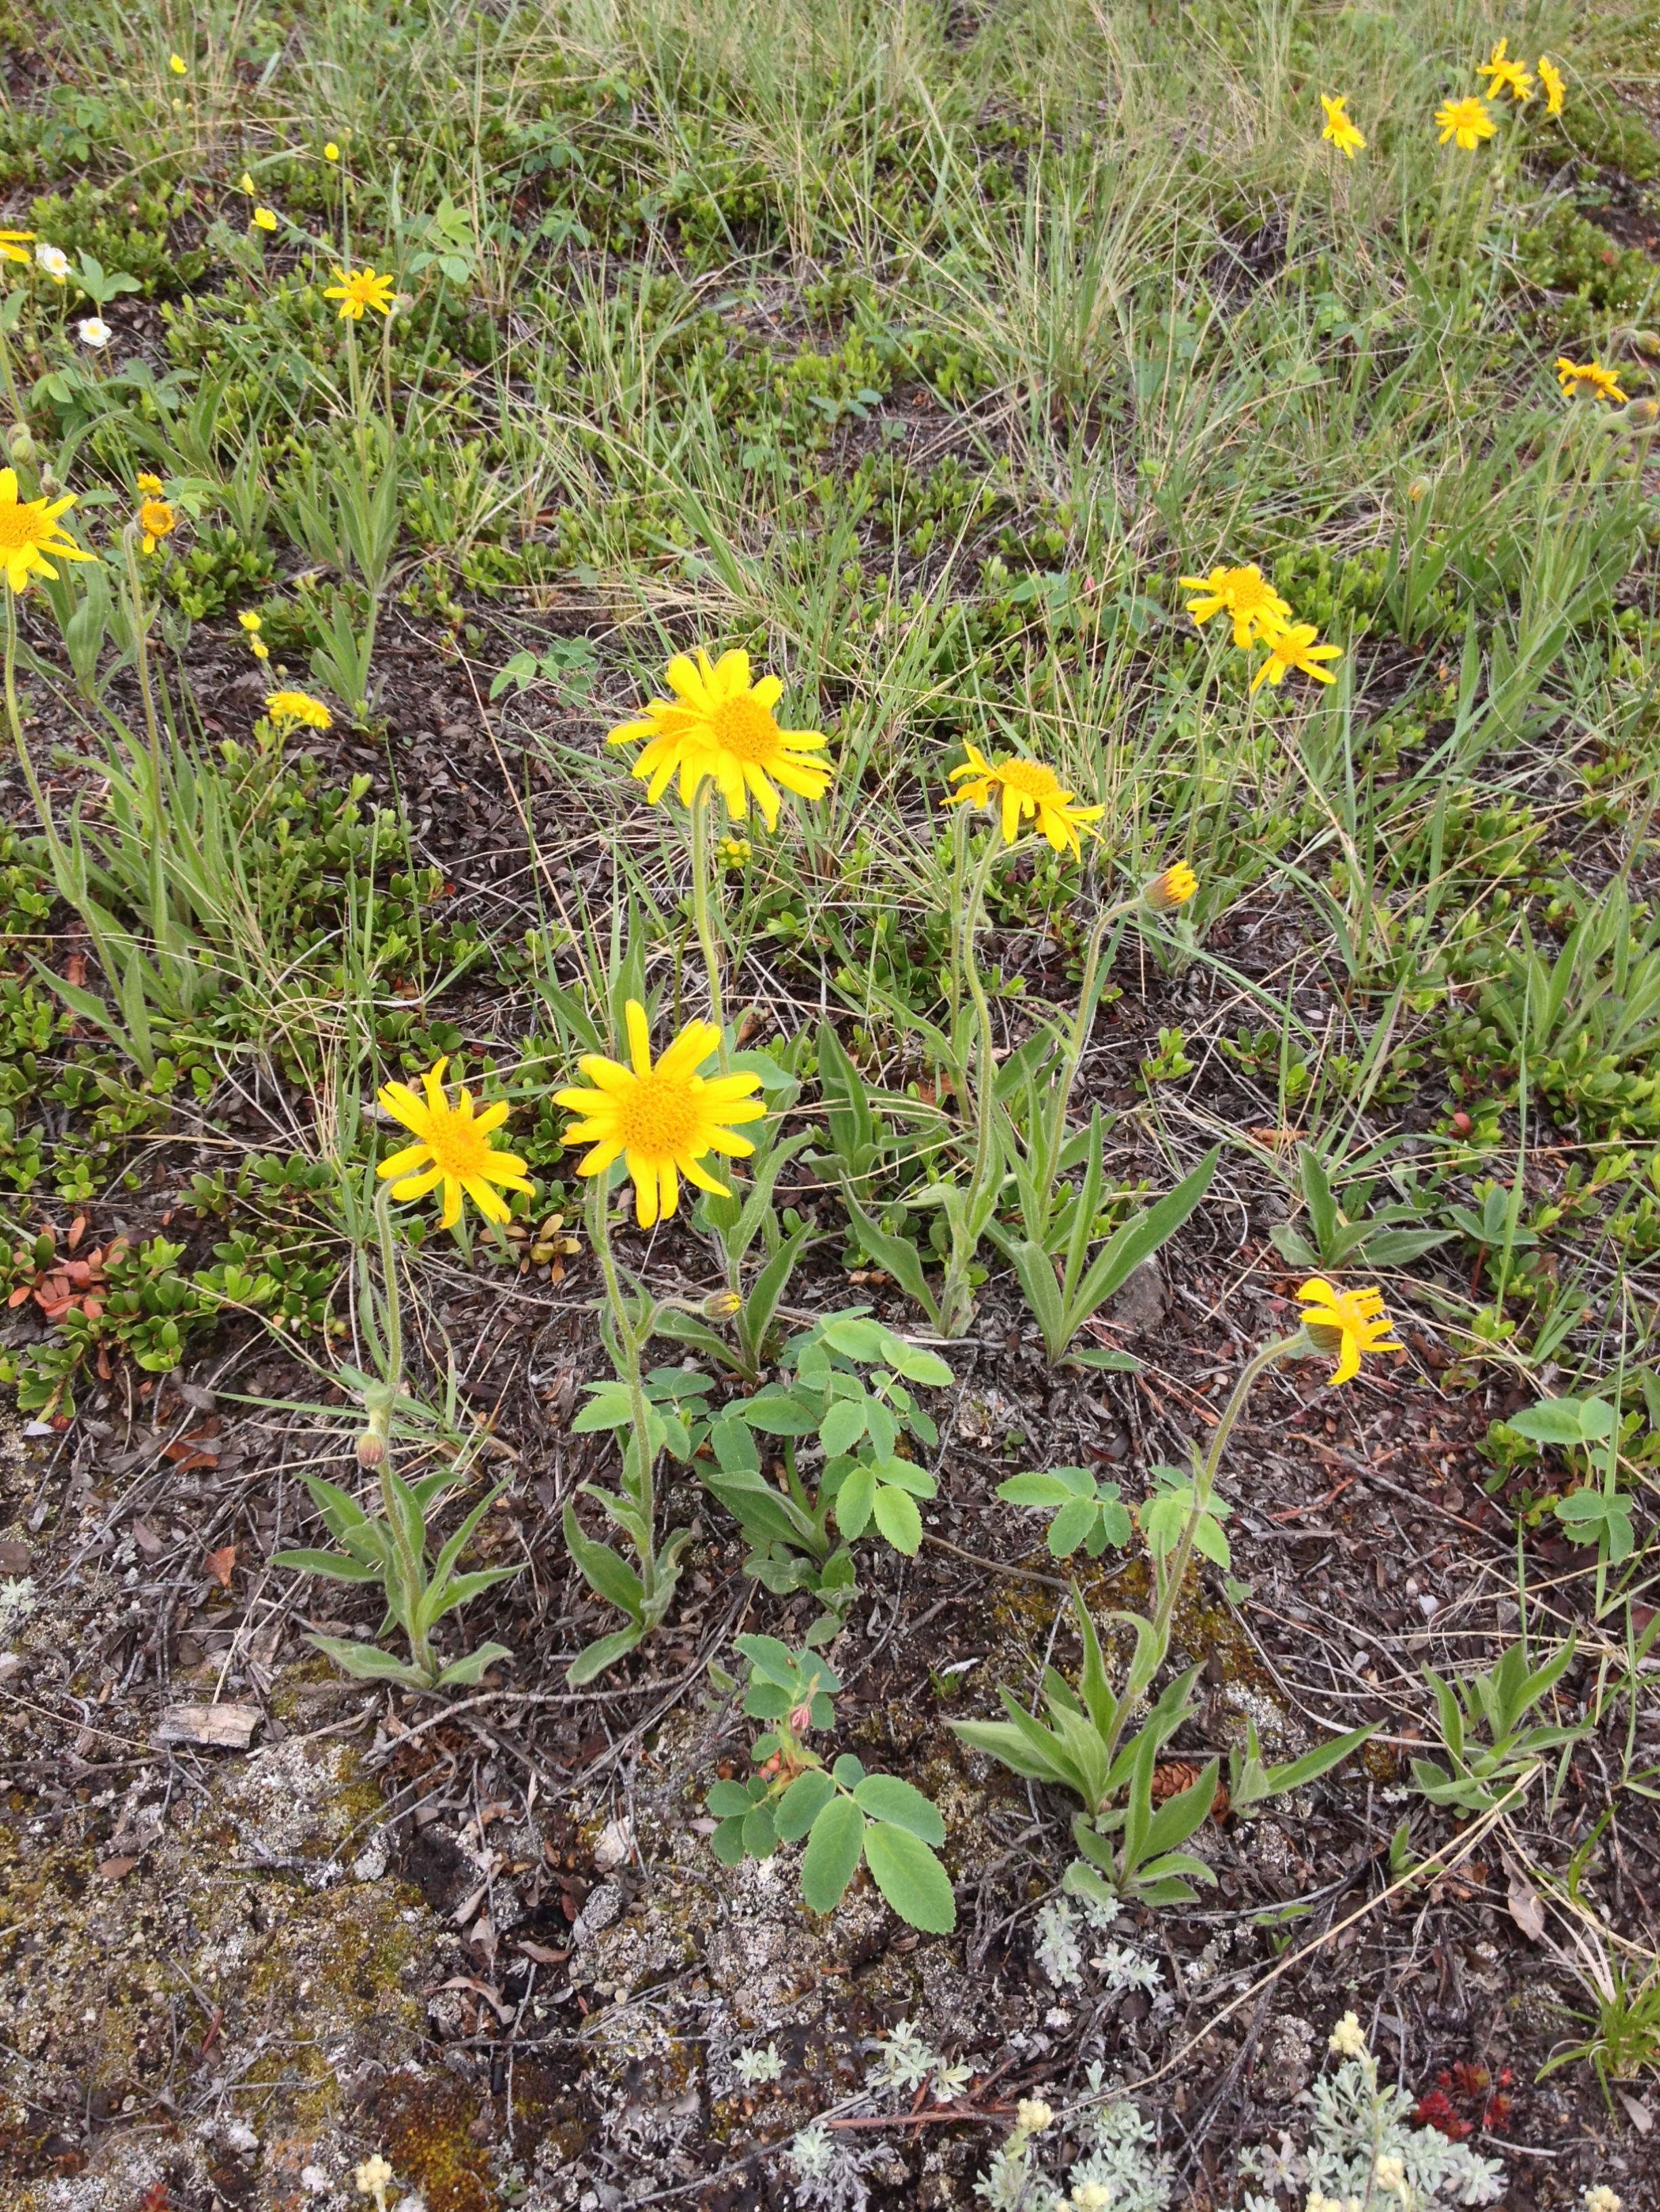 Is Arnica A Natural Herbal Product